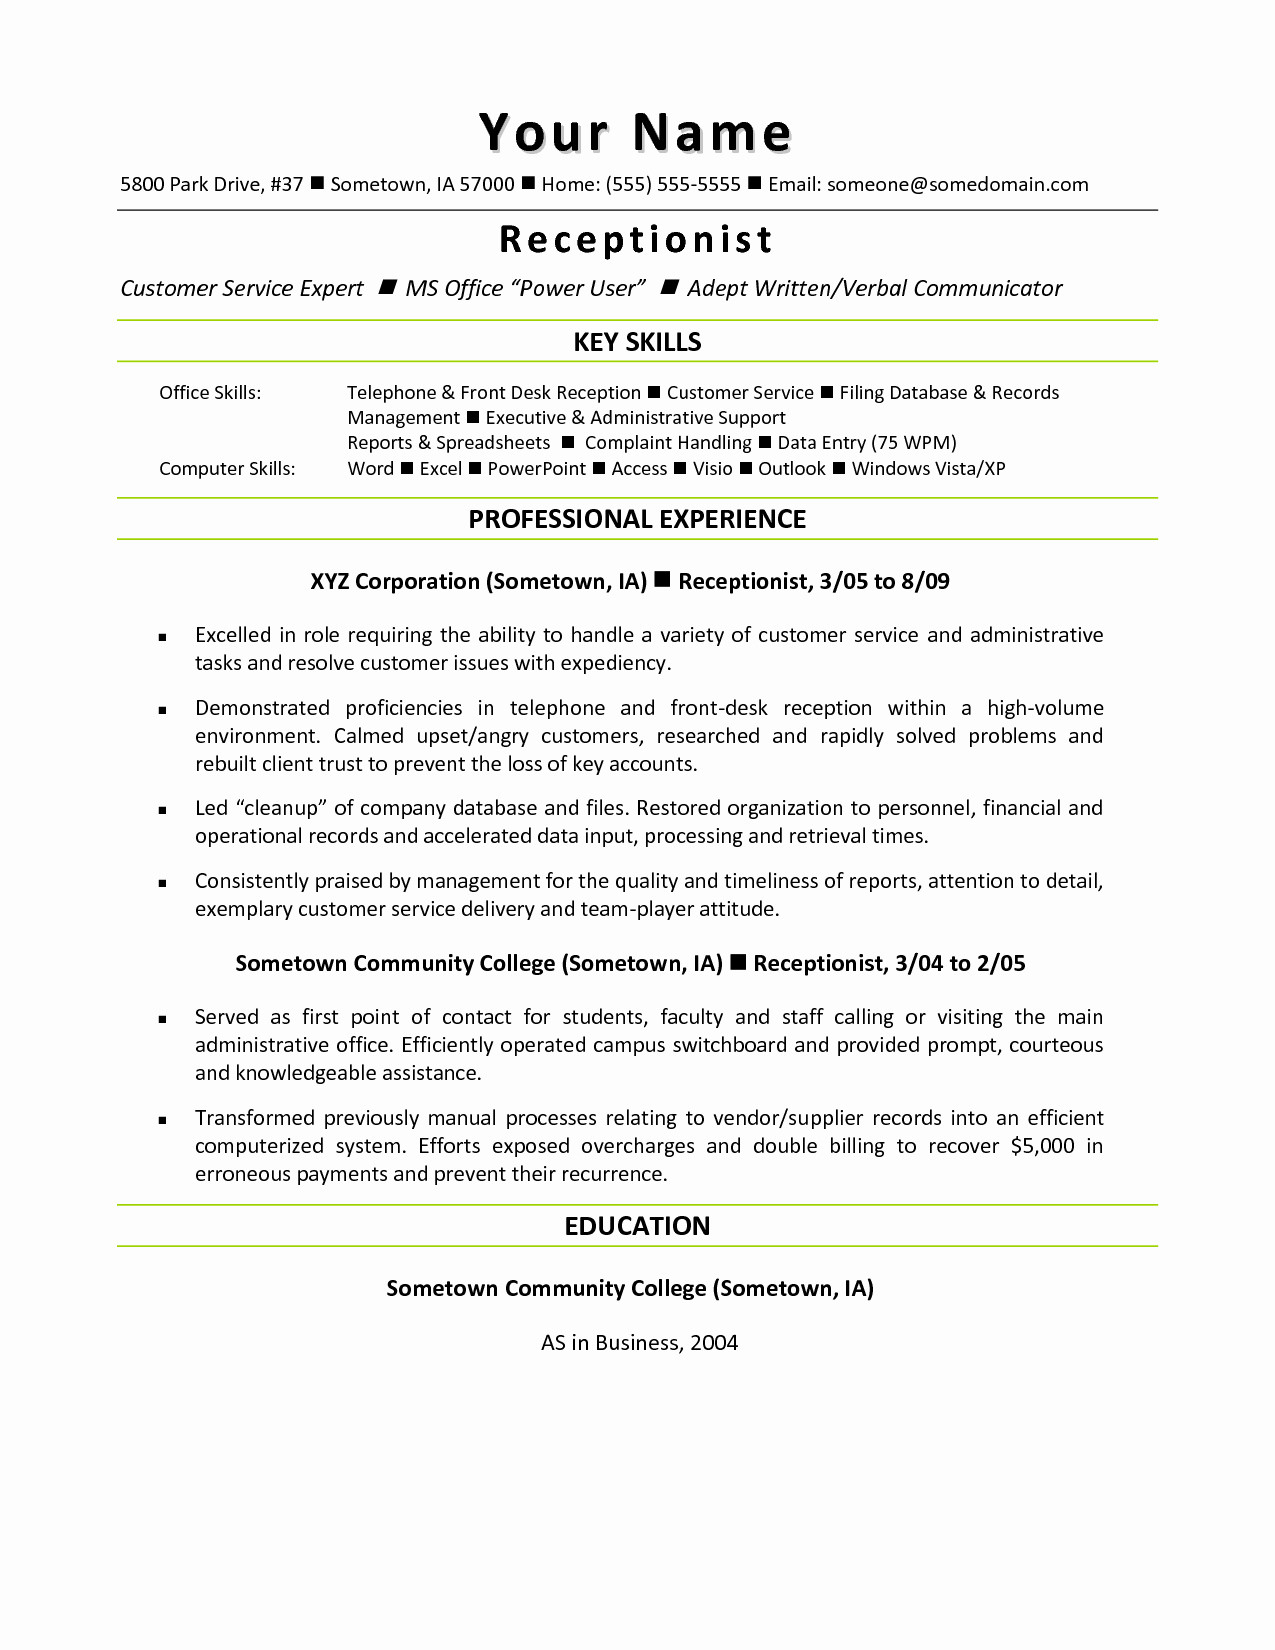 Cover Letter Template for Receptionist - Resume Template for Receptionist Elegant Medical assistant Sample